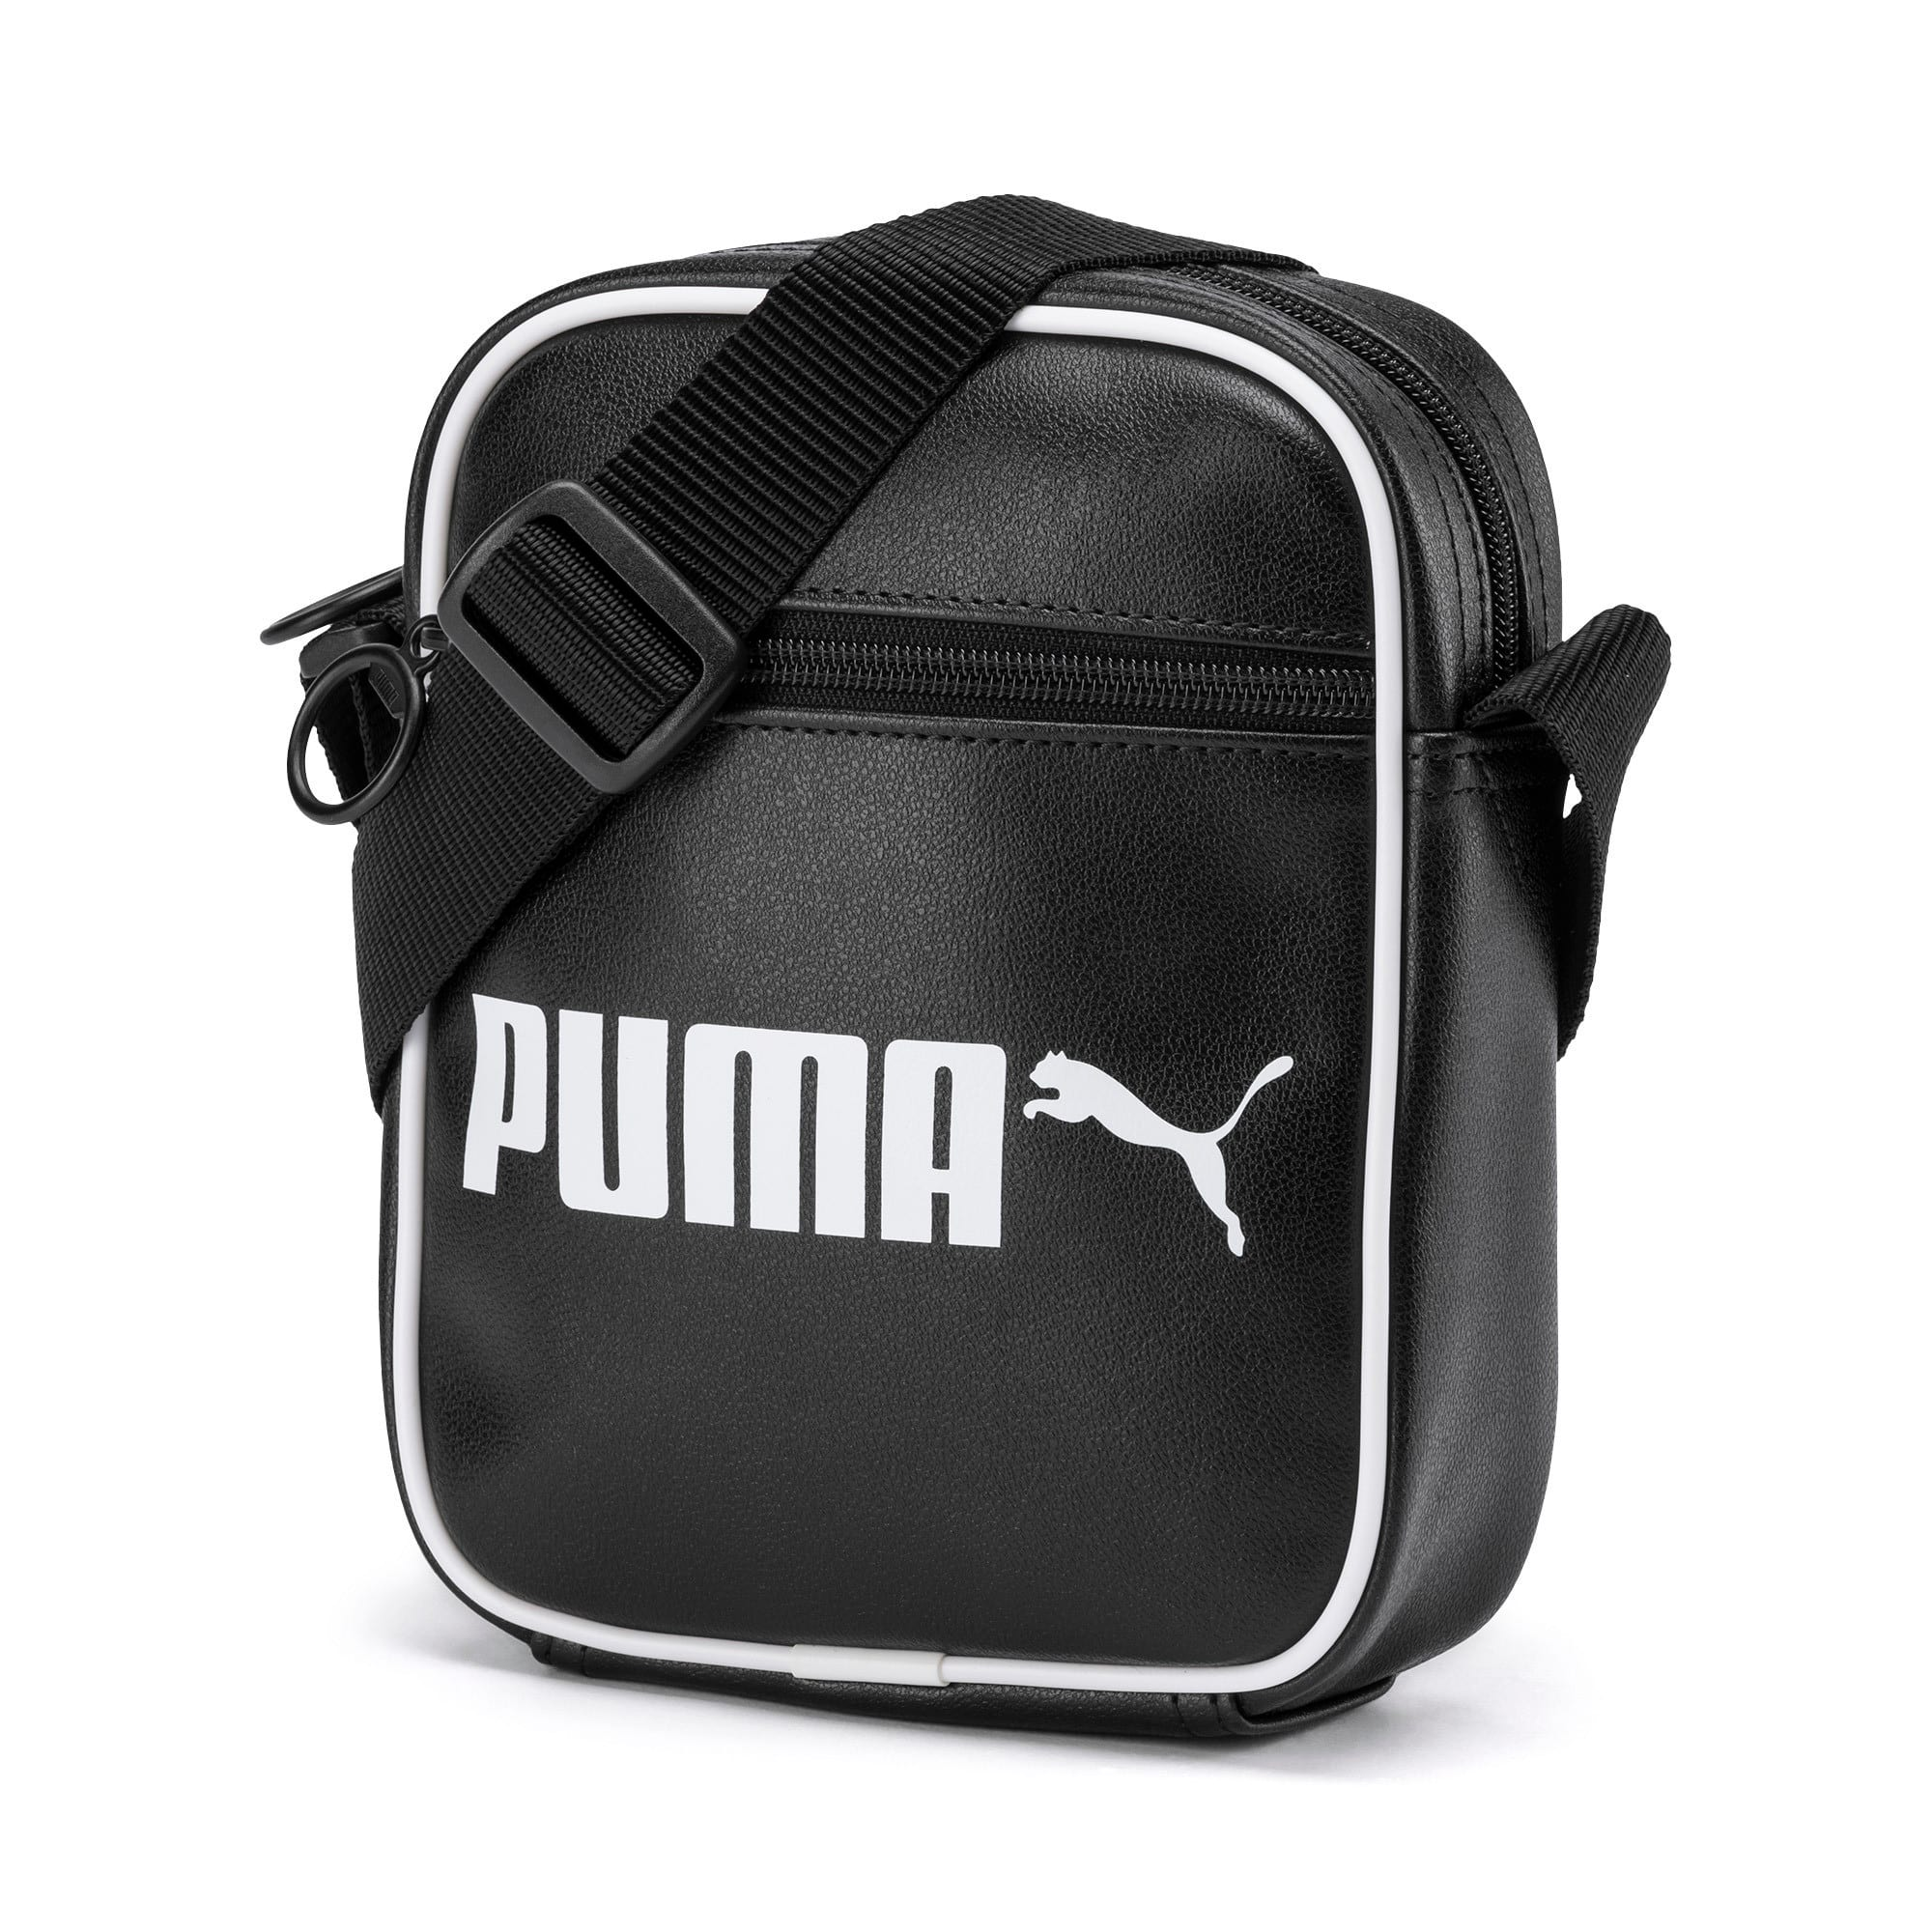 Image result for A sporty Puma bag